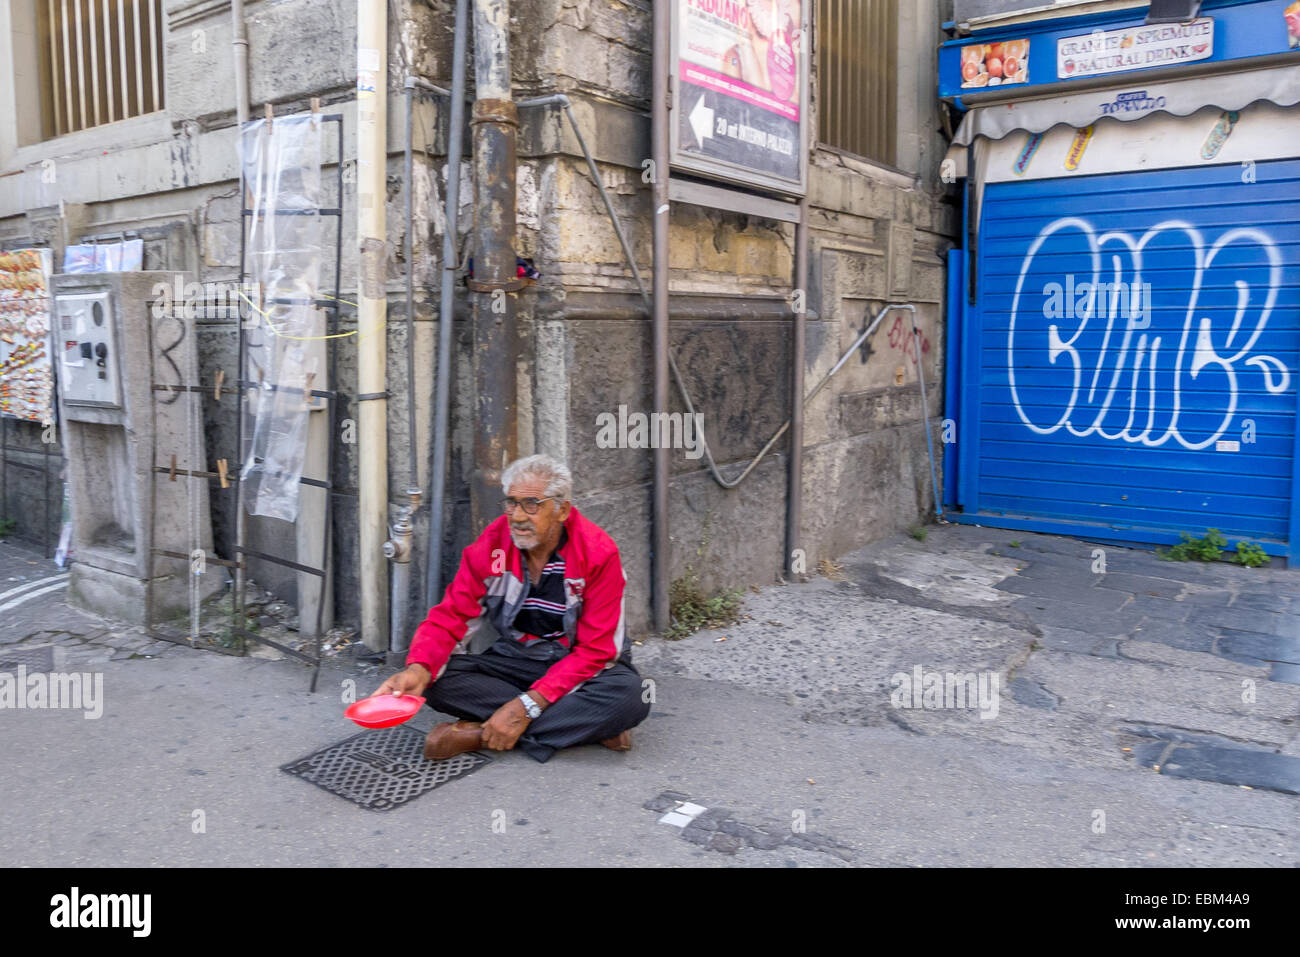 A beggar on the streets of Naples. - Stock Image